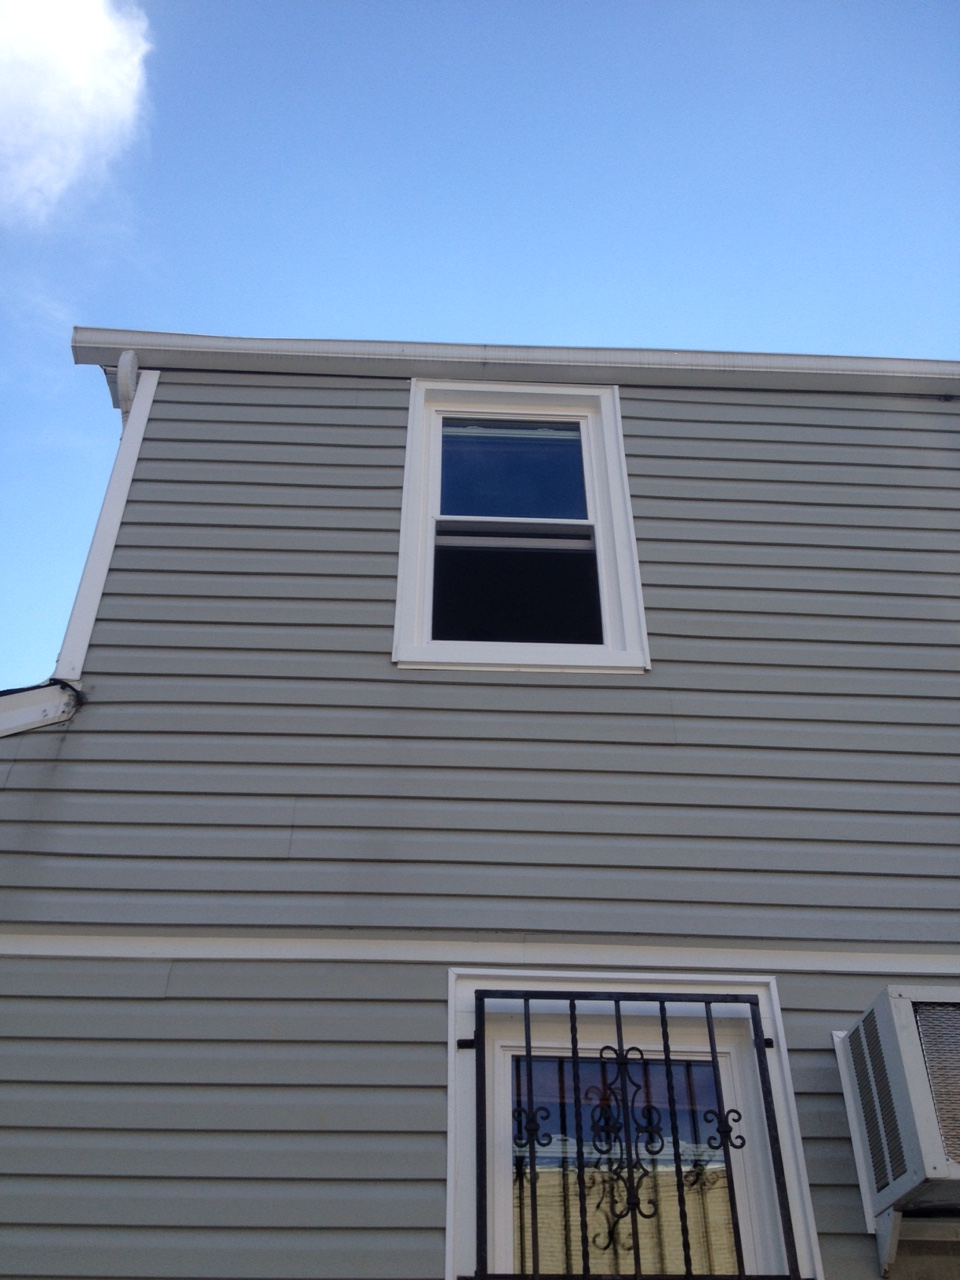 Gallery Double Hung Windows New Us Window Factory Inc